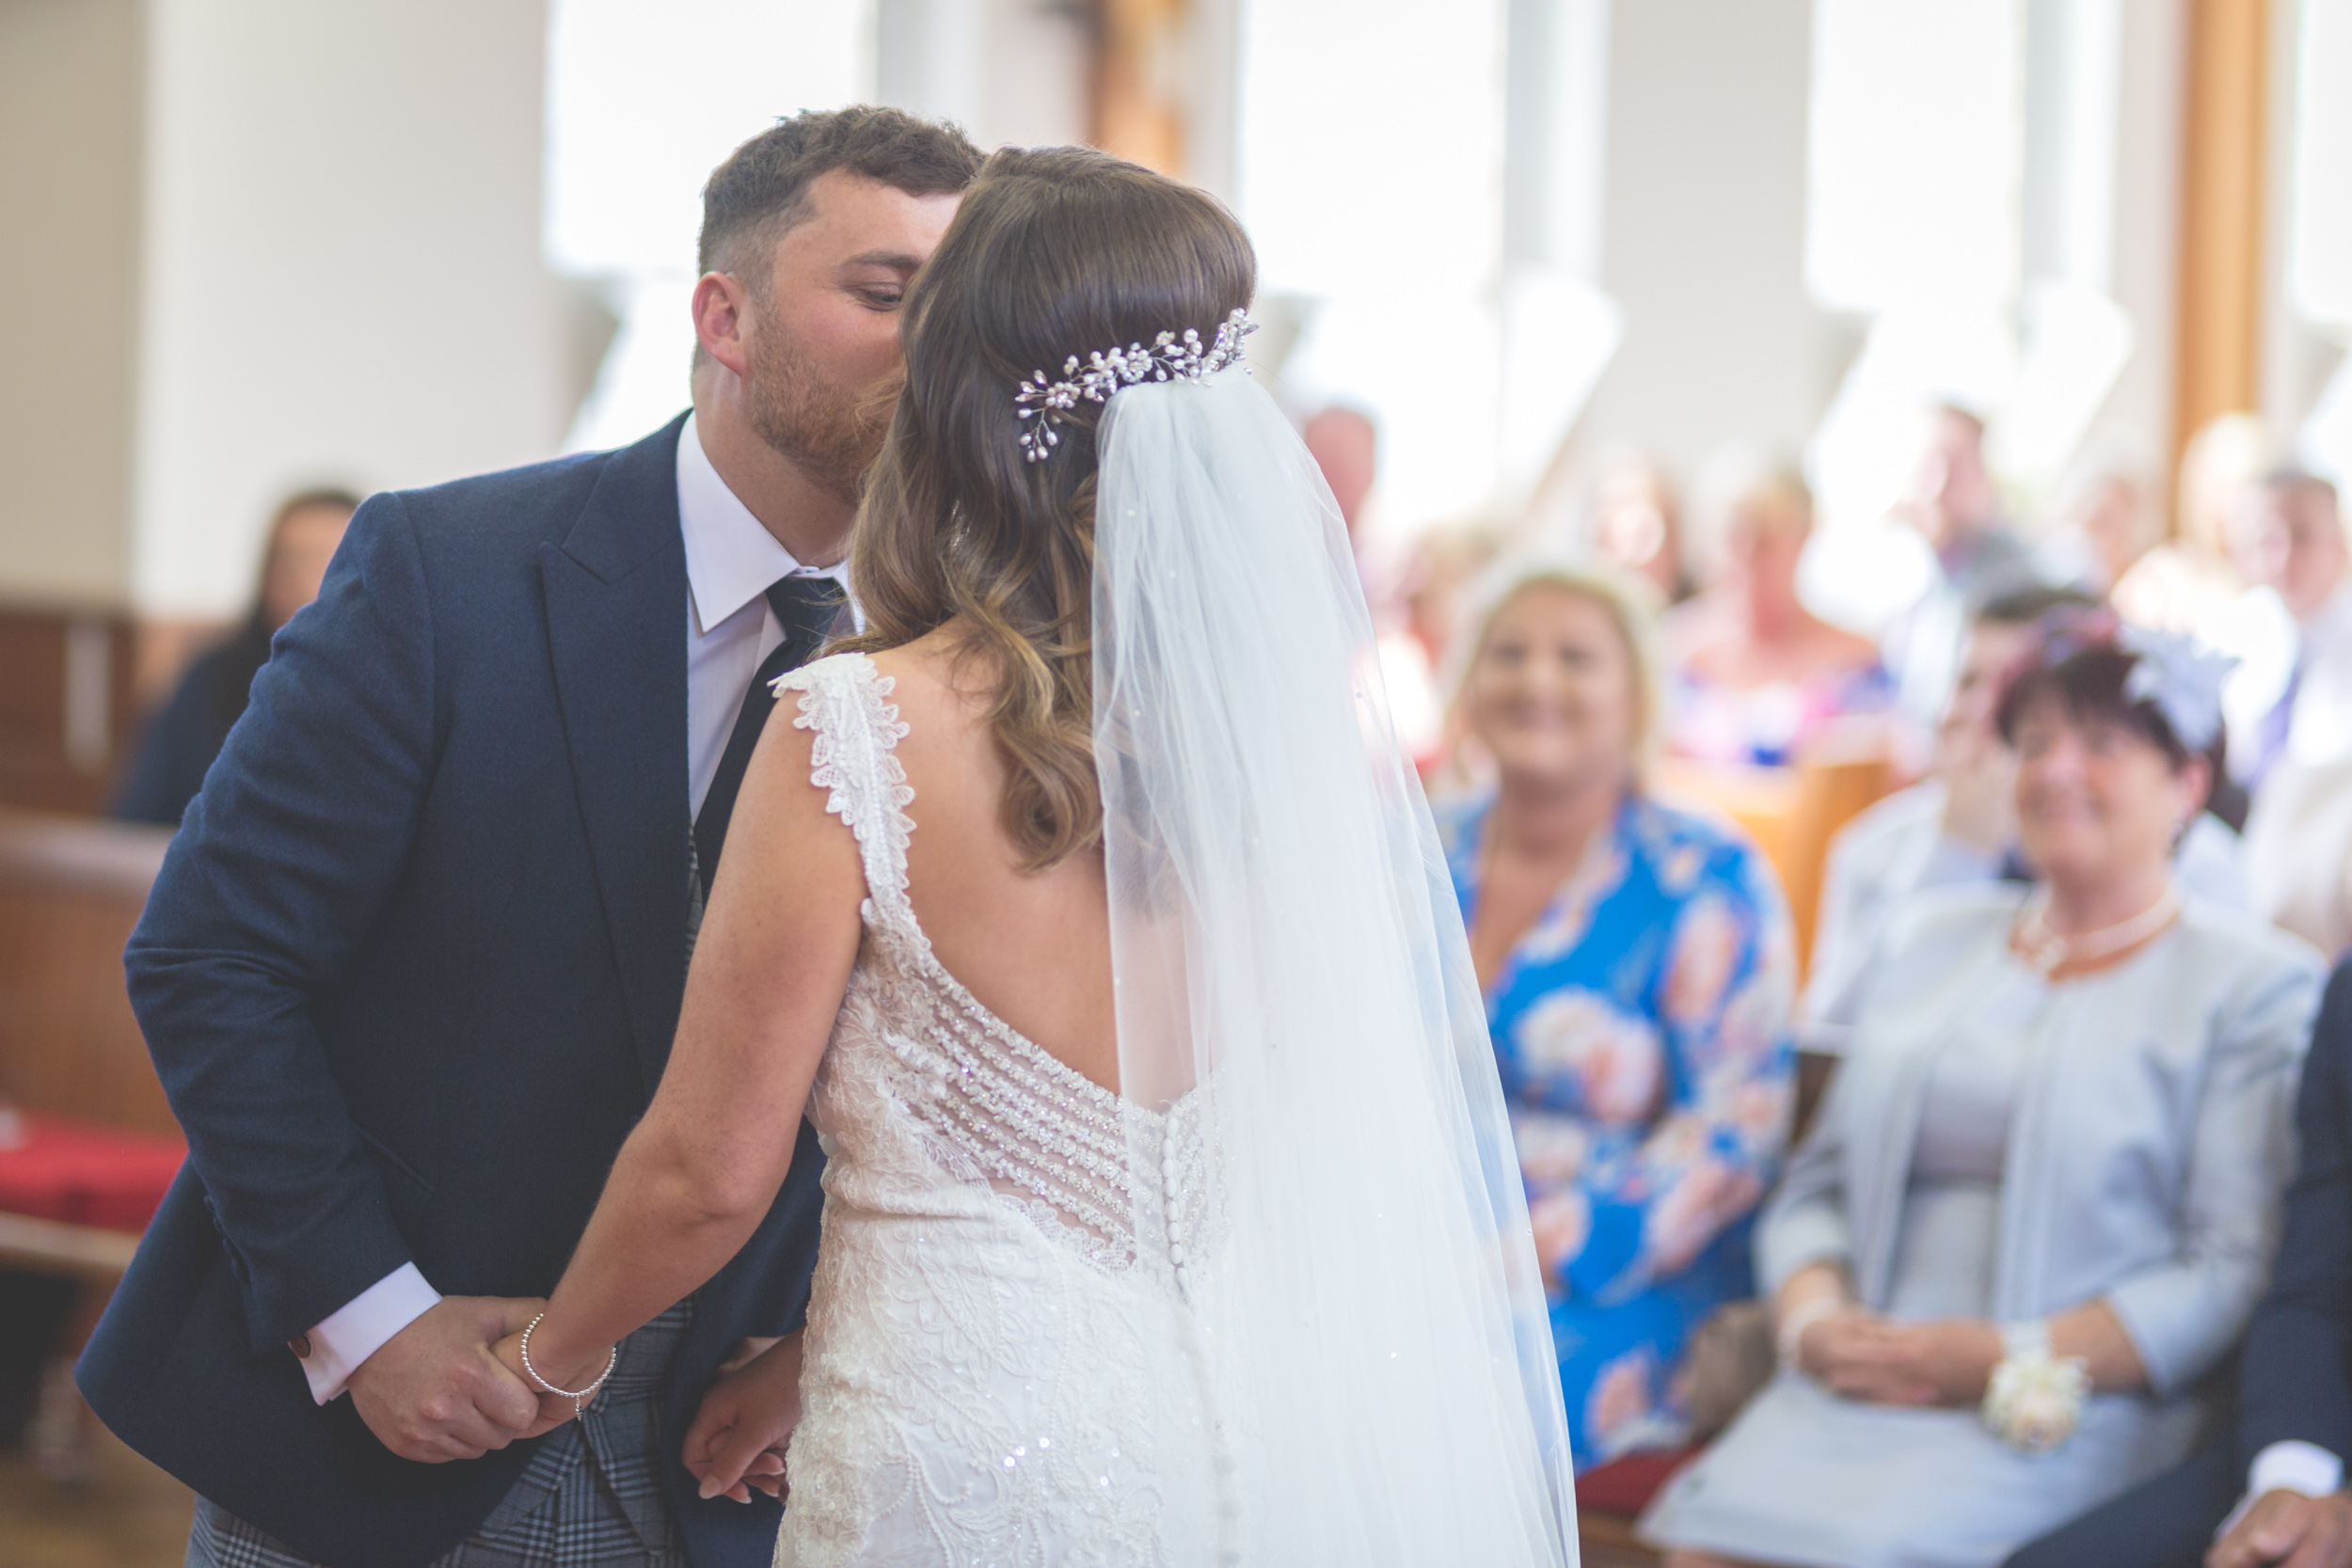 Brian McEwan | Northern Ireland Wedding Photographer | Rebecca & Michael | Ceremony-79.jpg